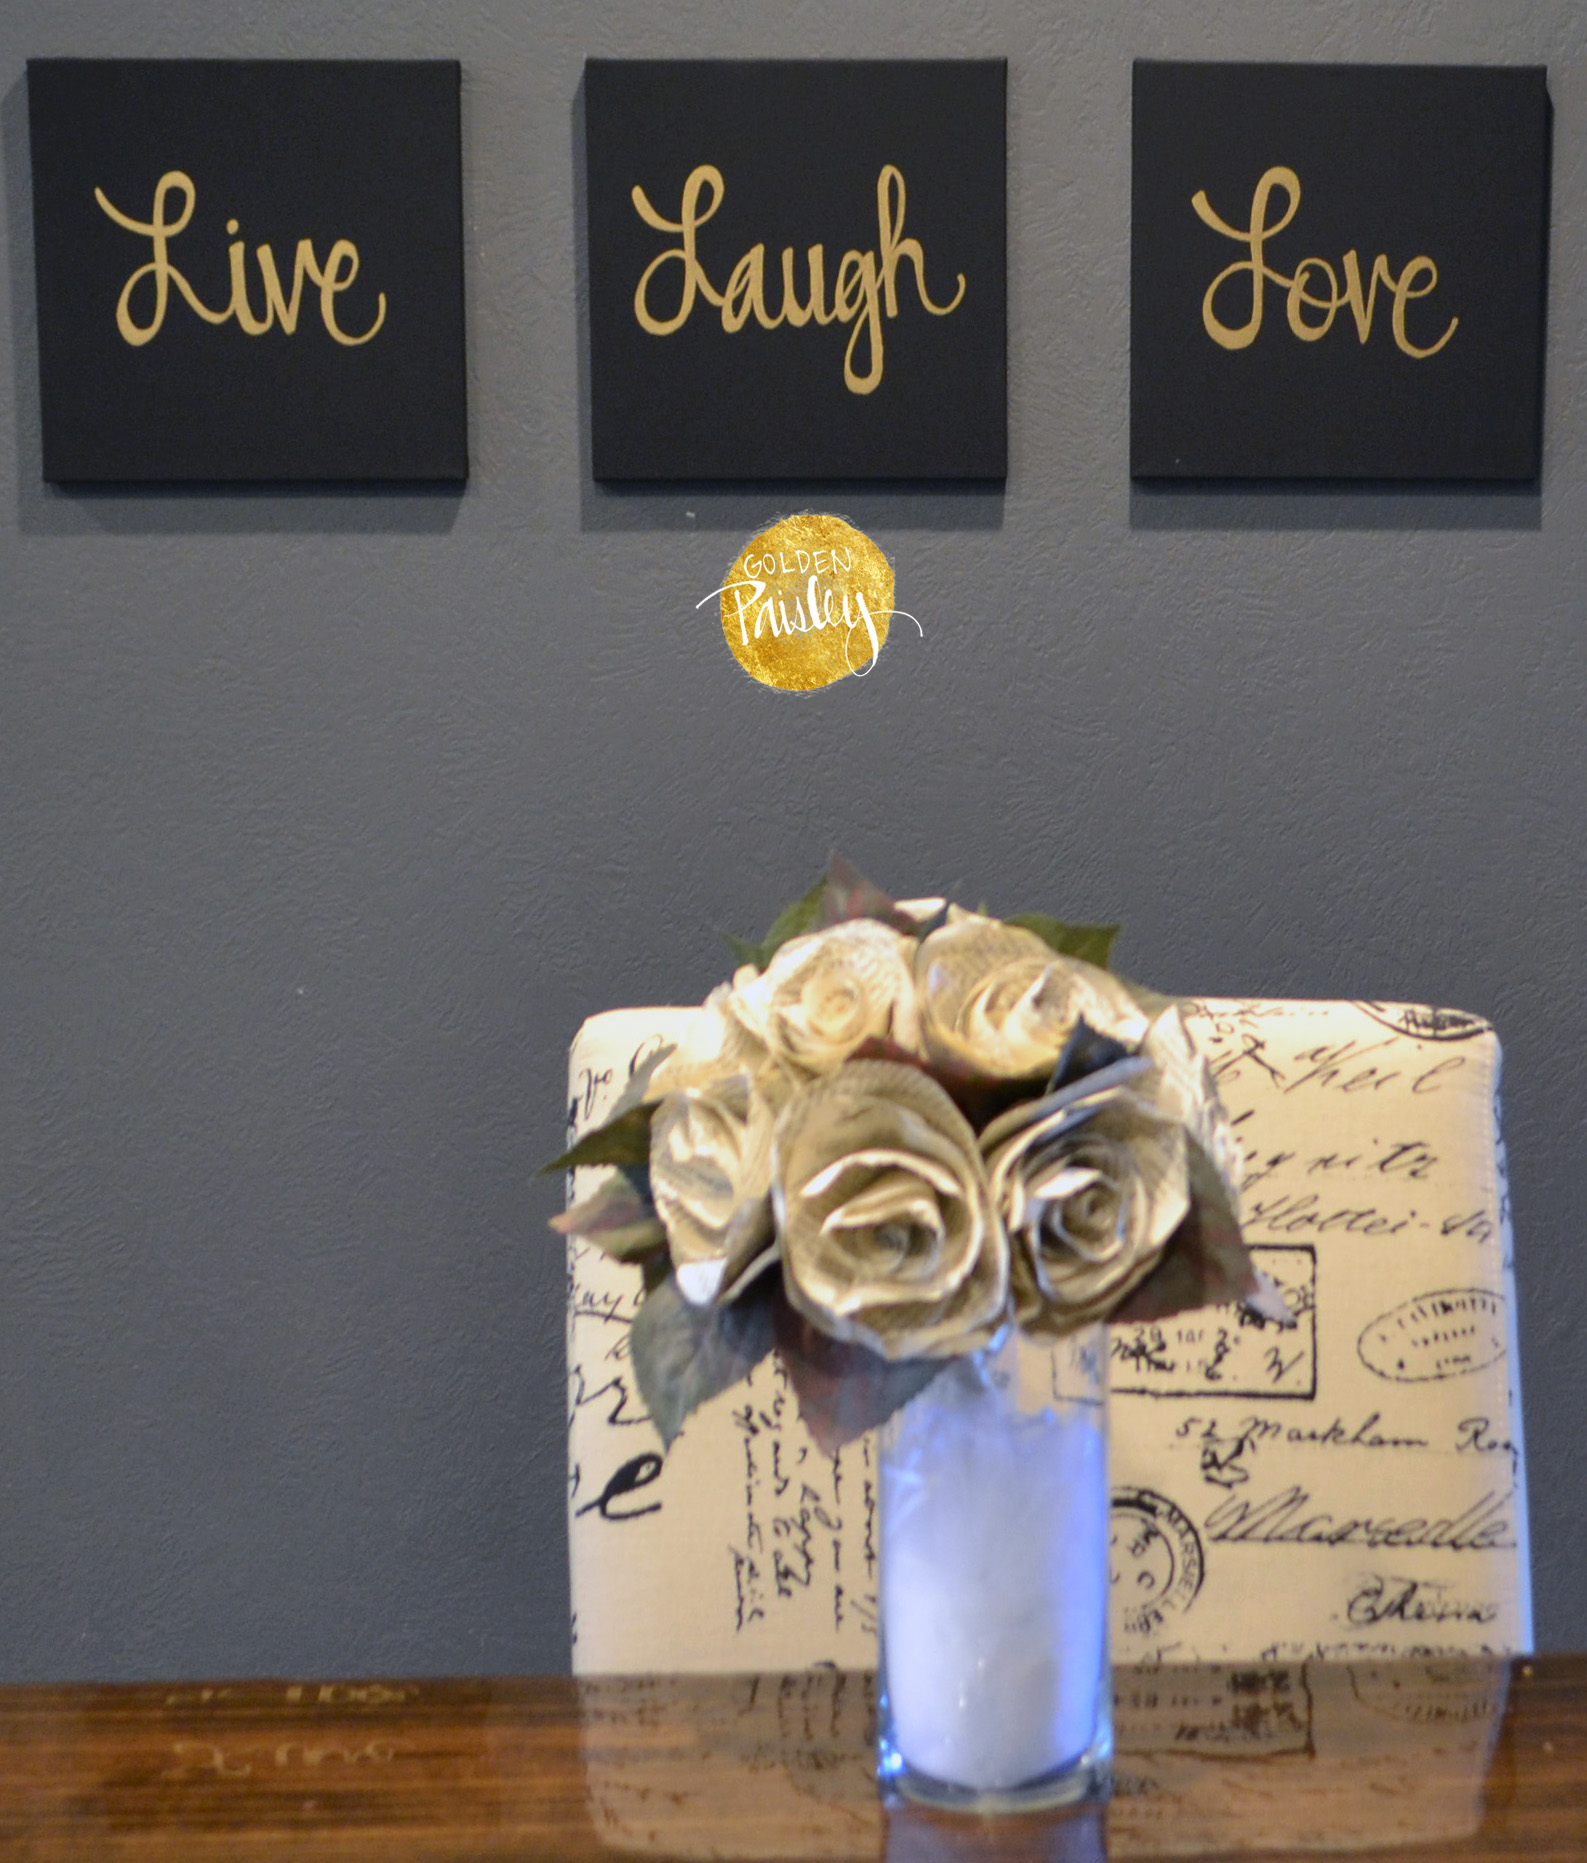 Live Love Laugh 3 Piece Black Wall Decor Sets Intended For Well Known Live Laugh Love Black & Gold 3 Piece Wall Decor Set (View 9 of 20)